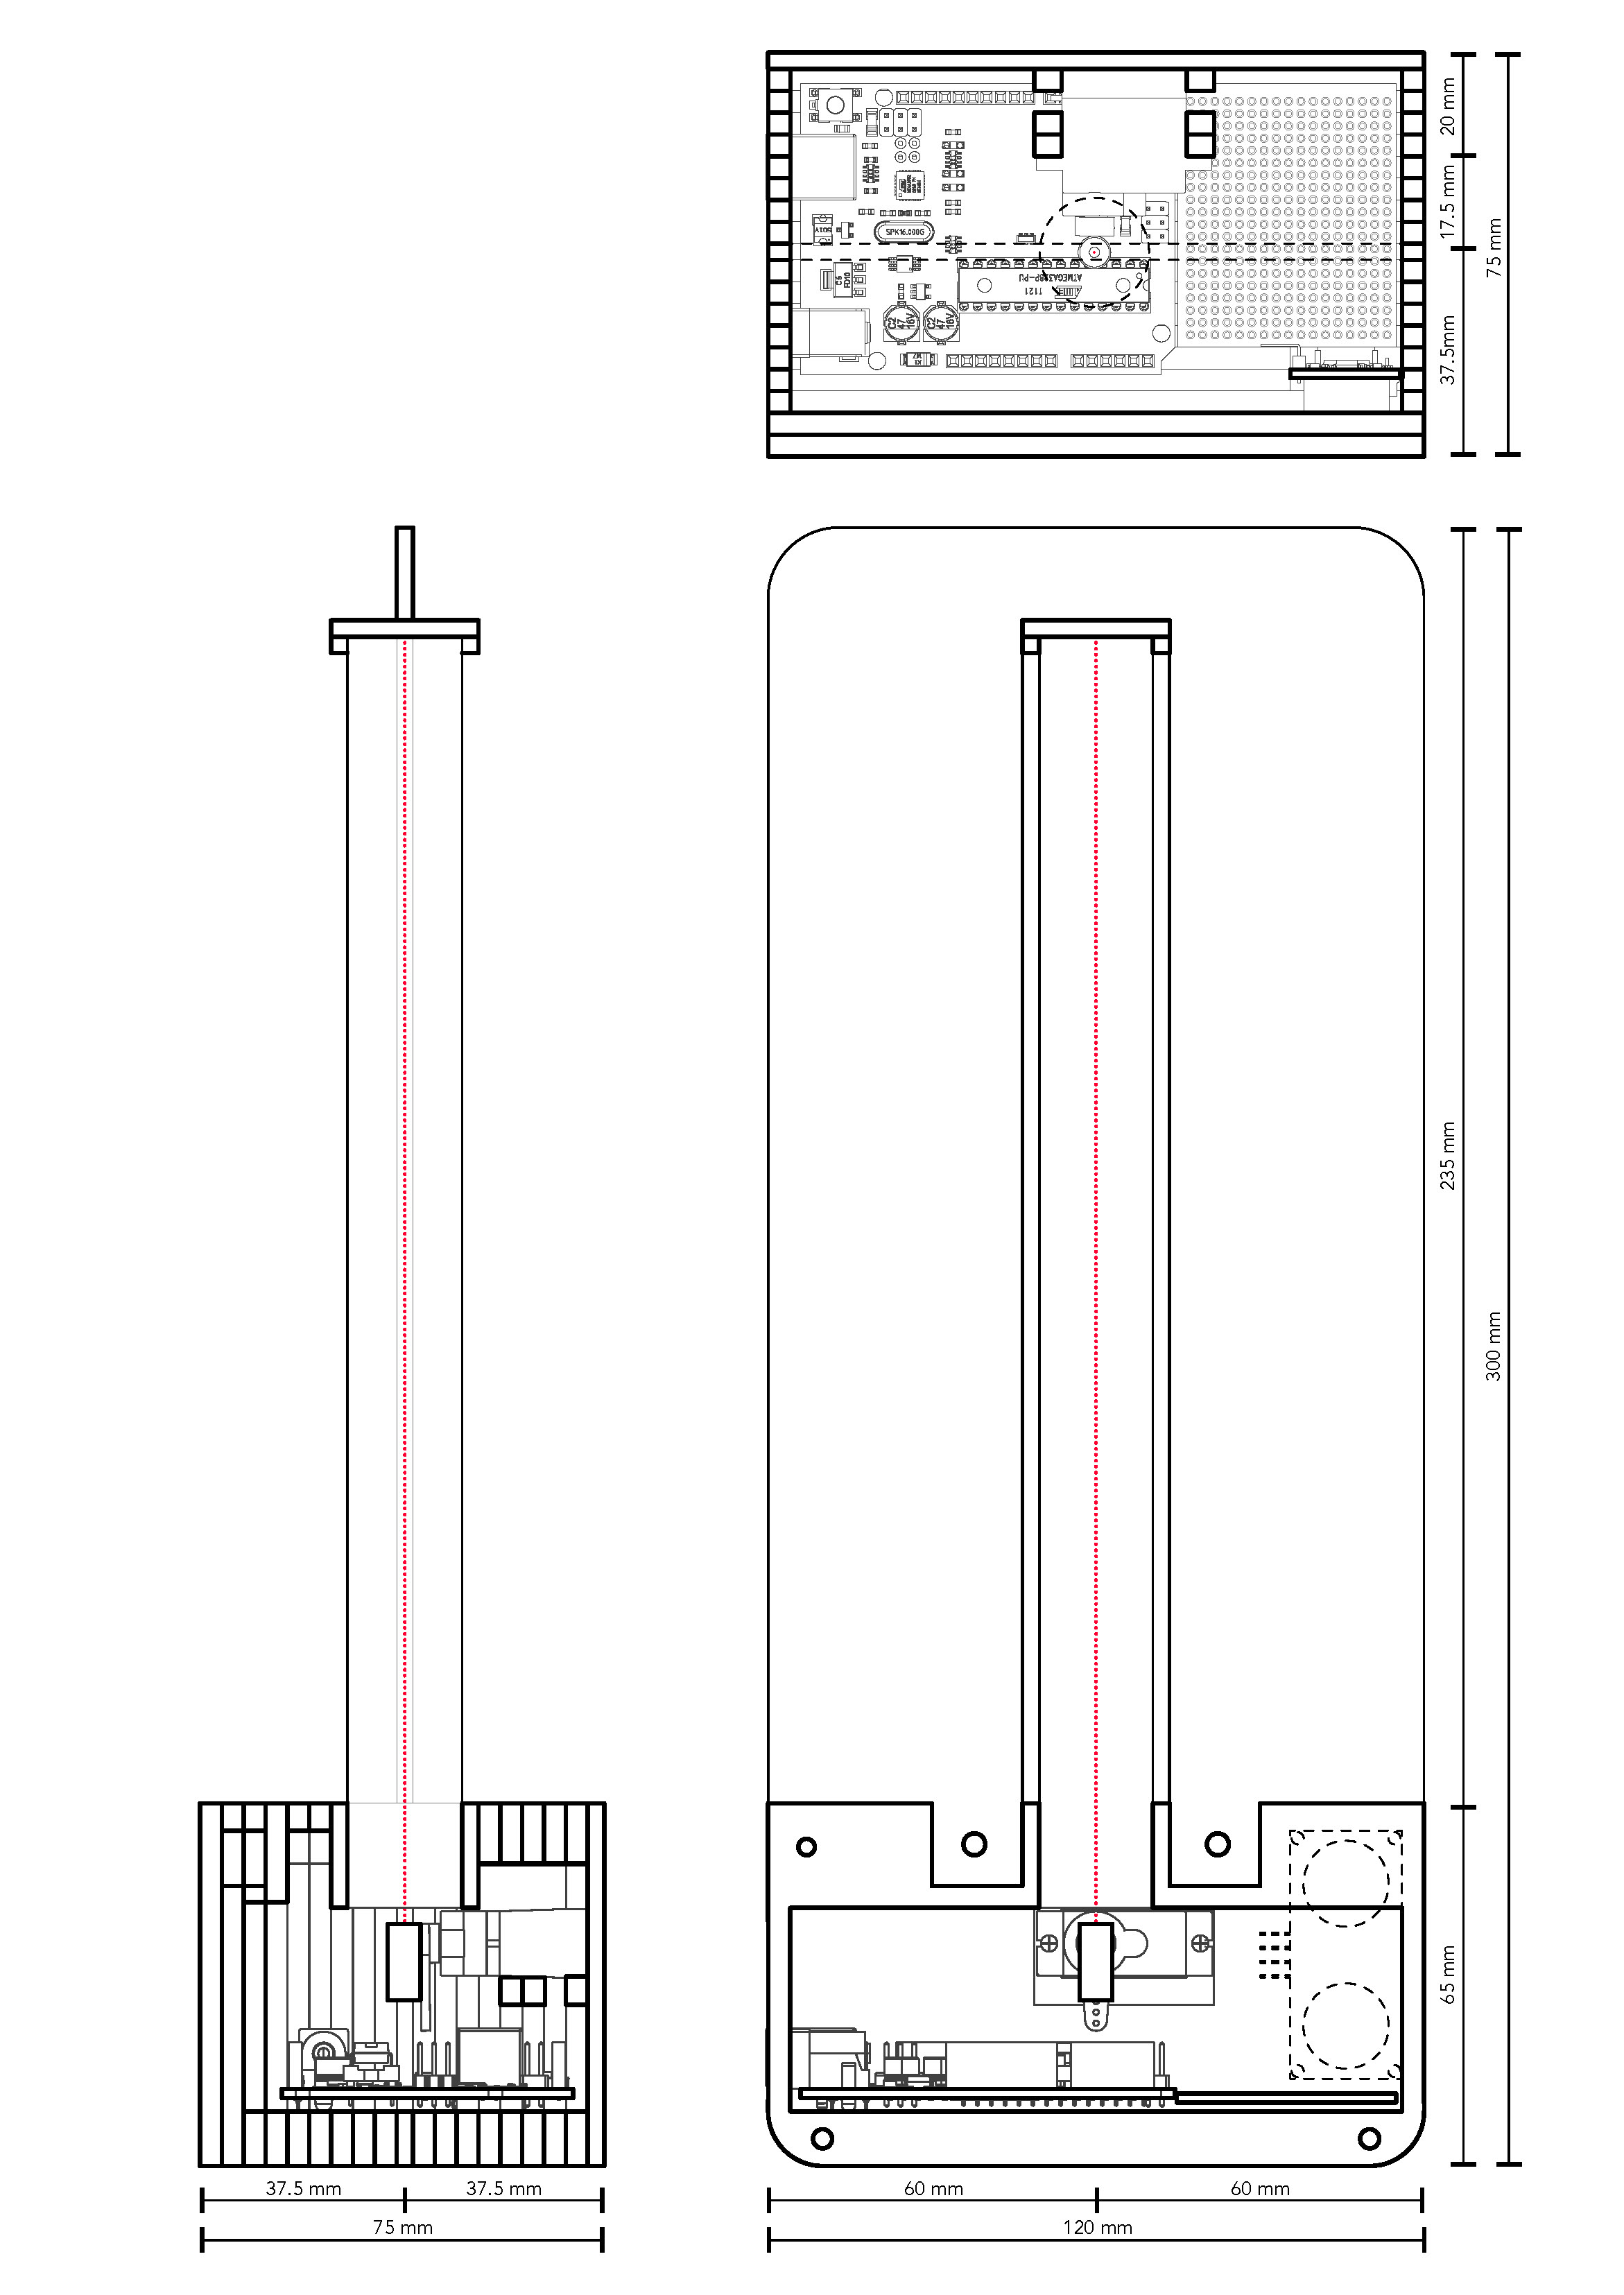 Schematic CAD drawings